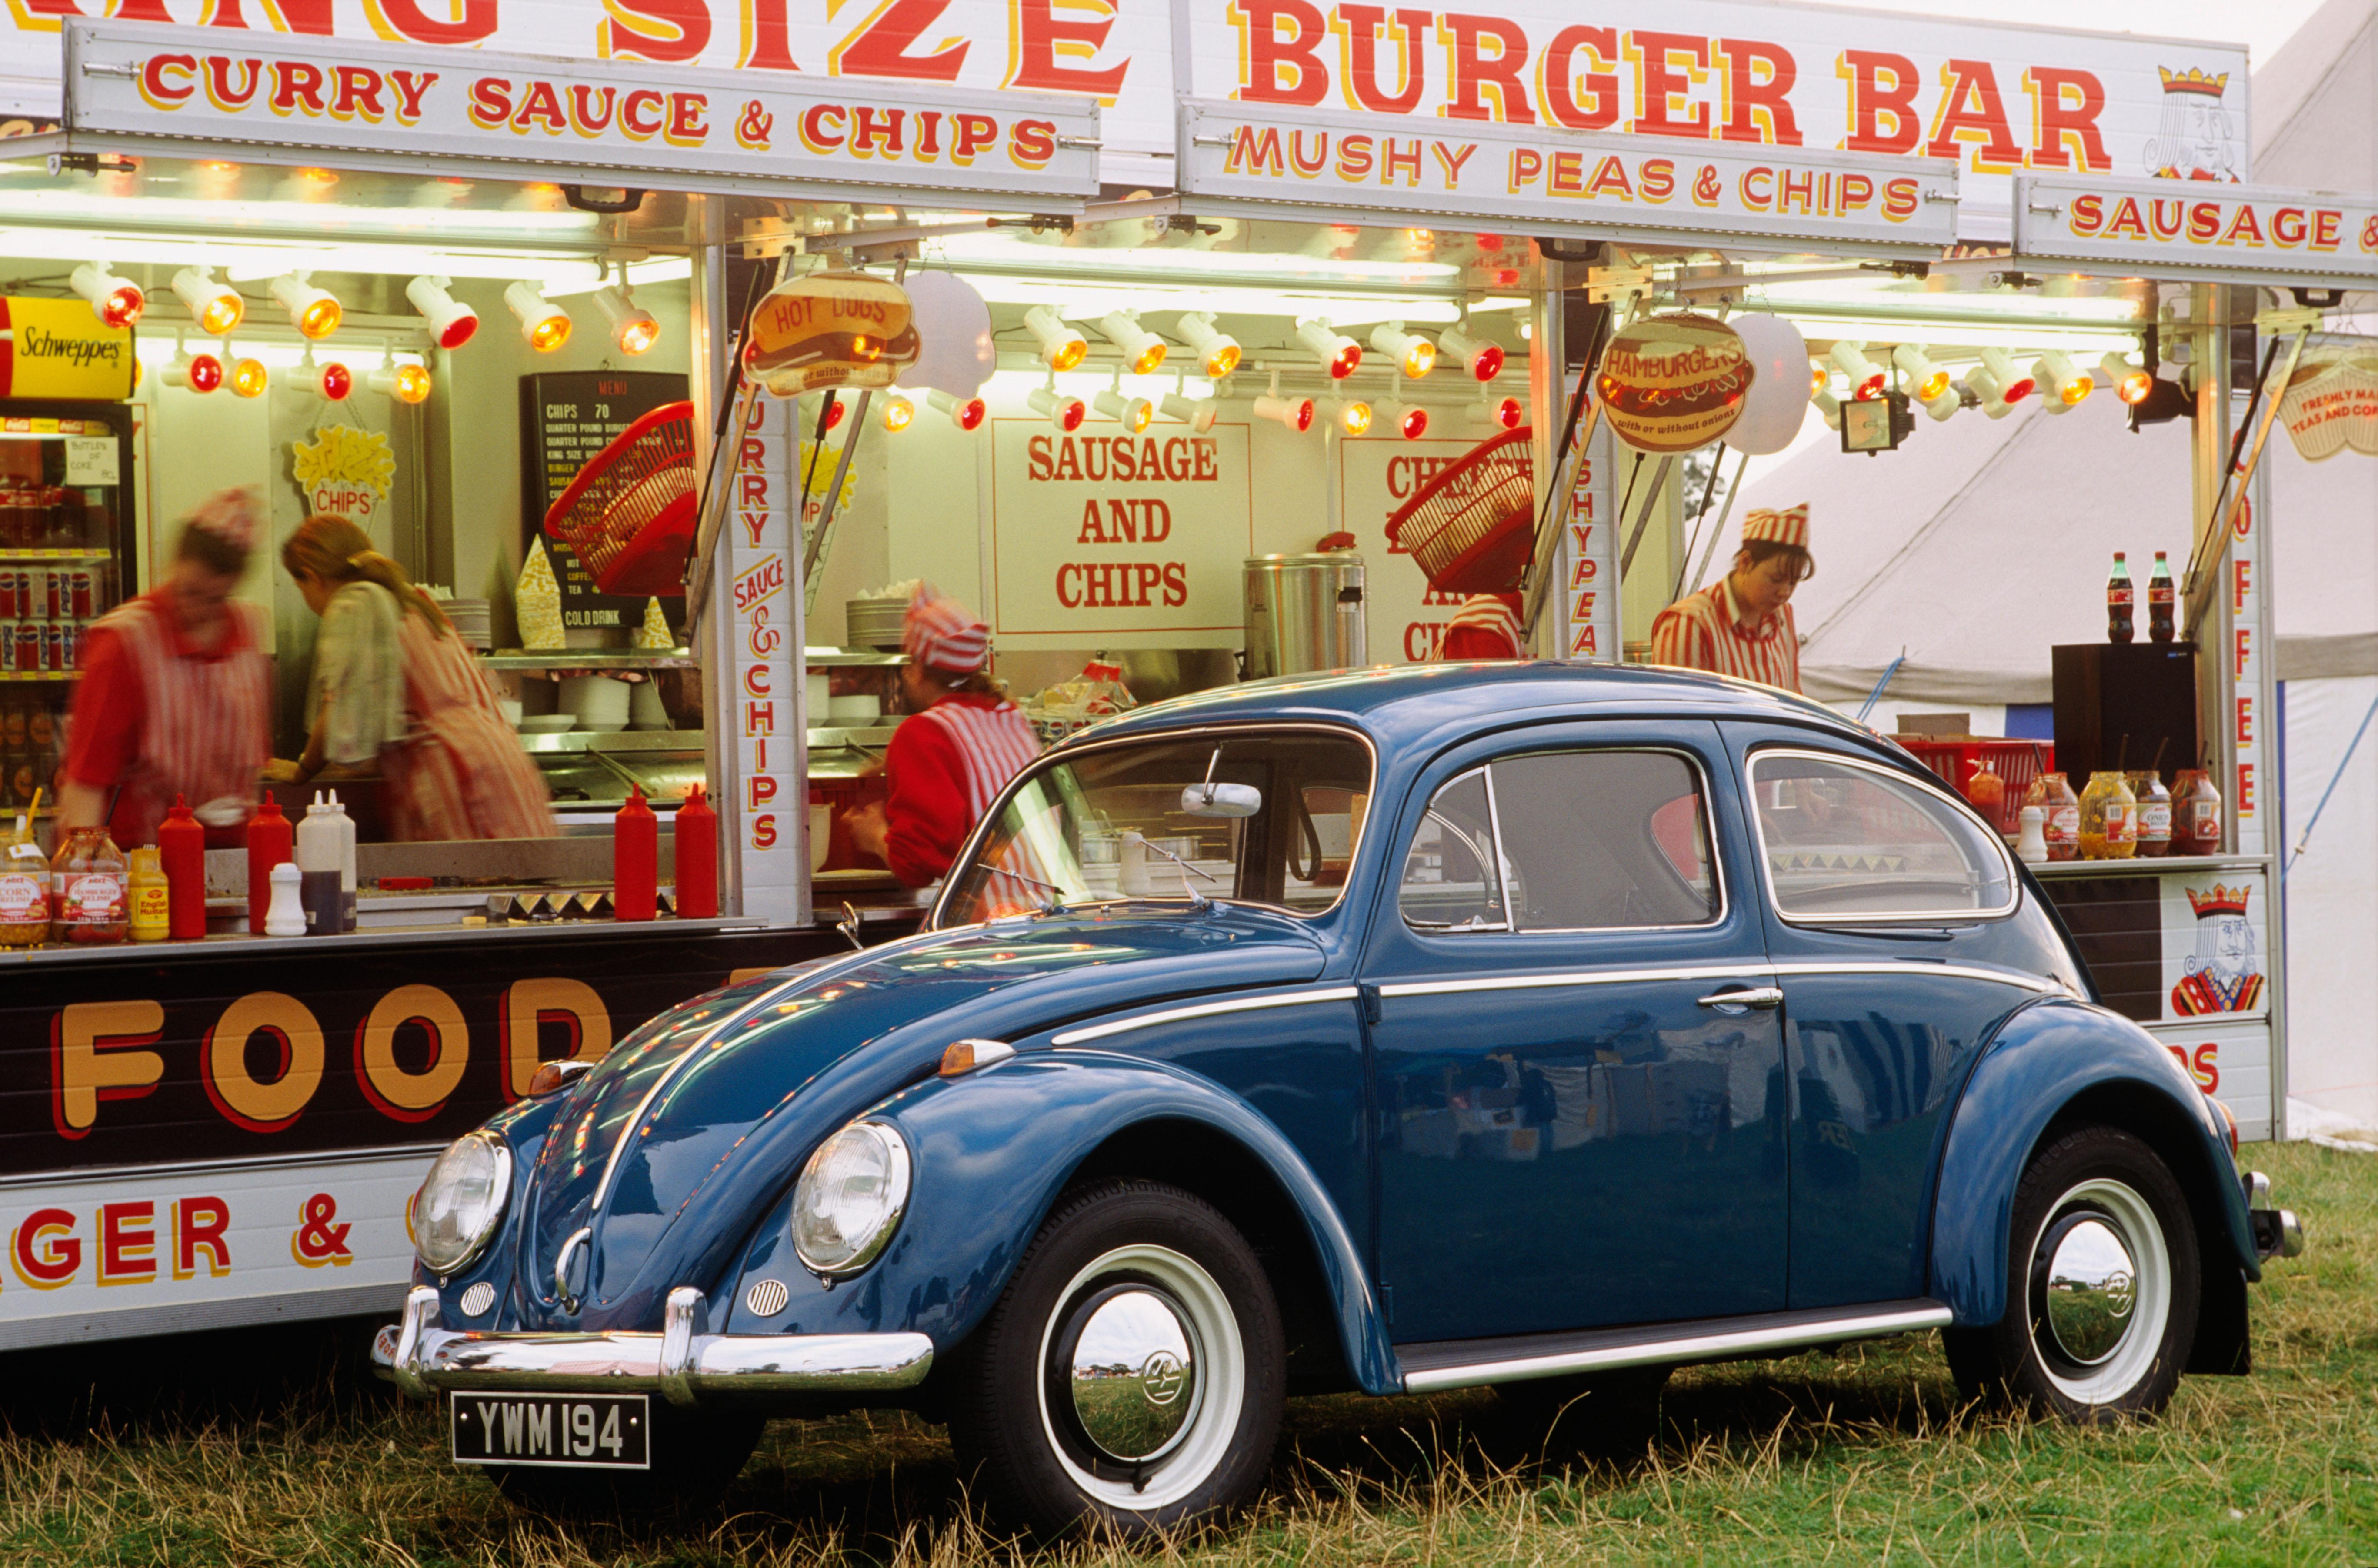 What links a Beetle, a Darracq and a Fury? The Weekend quiz